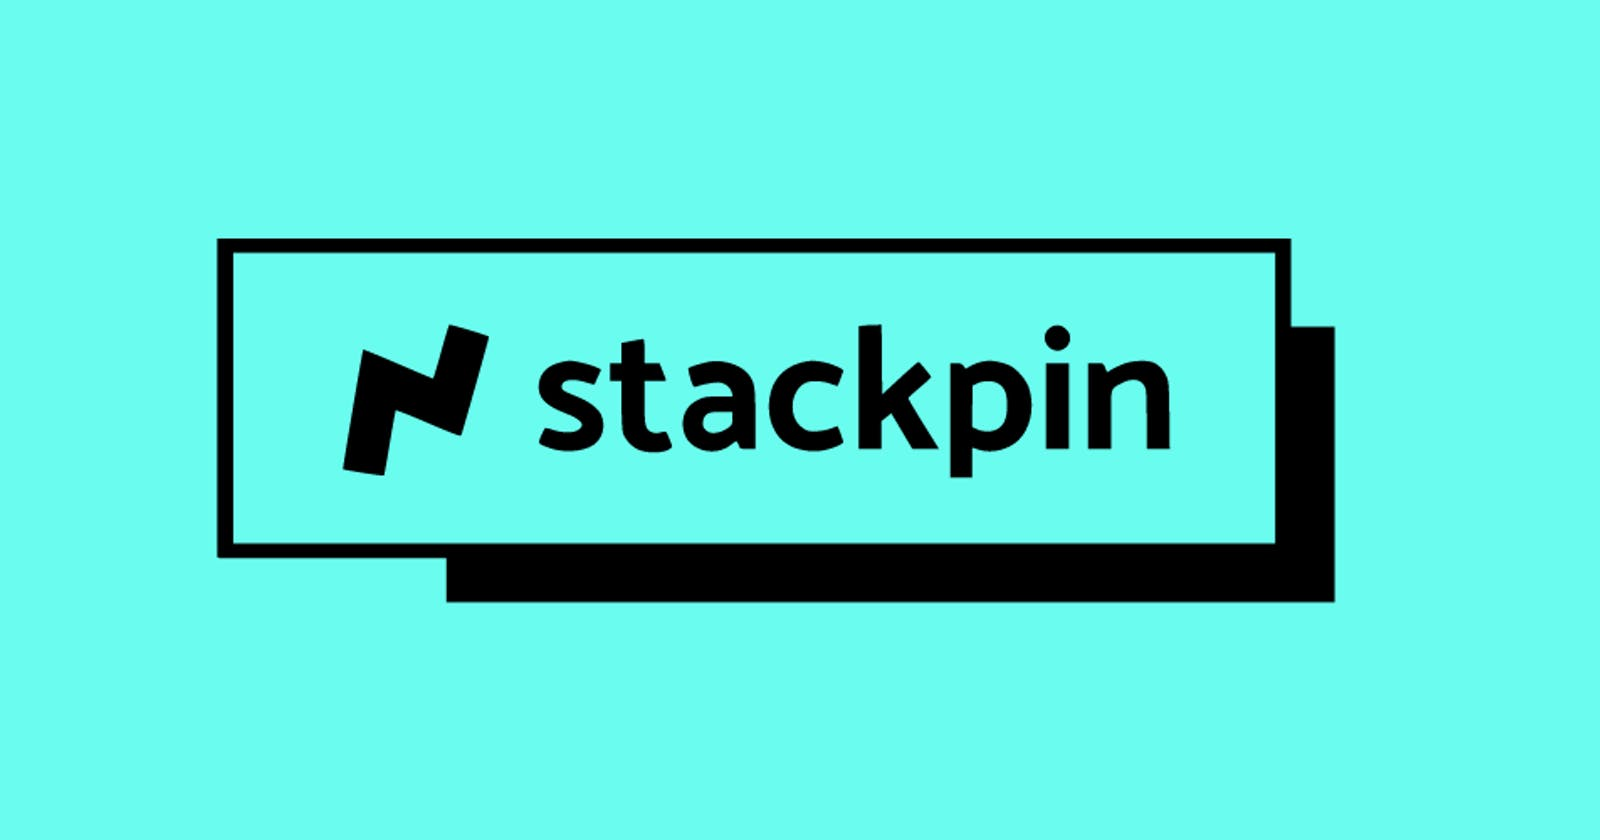 Building Stackpin - The idea, journey, and everything in between…